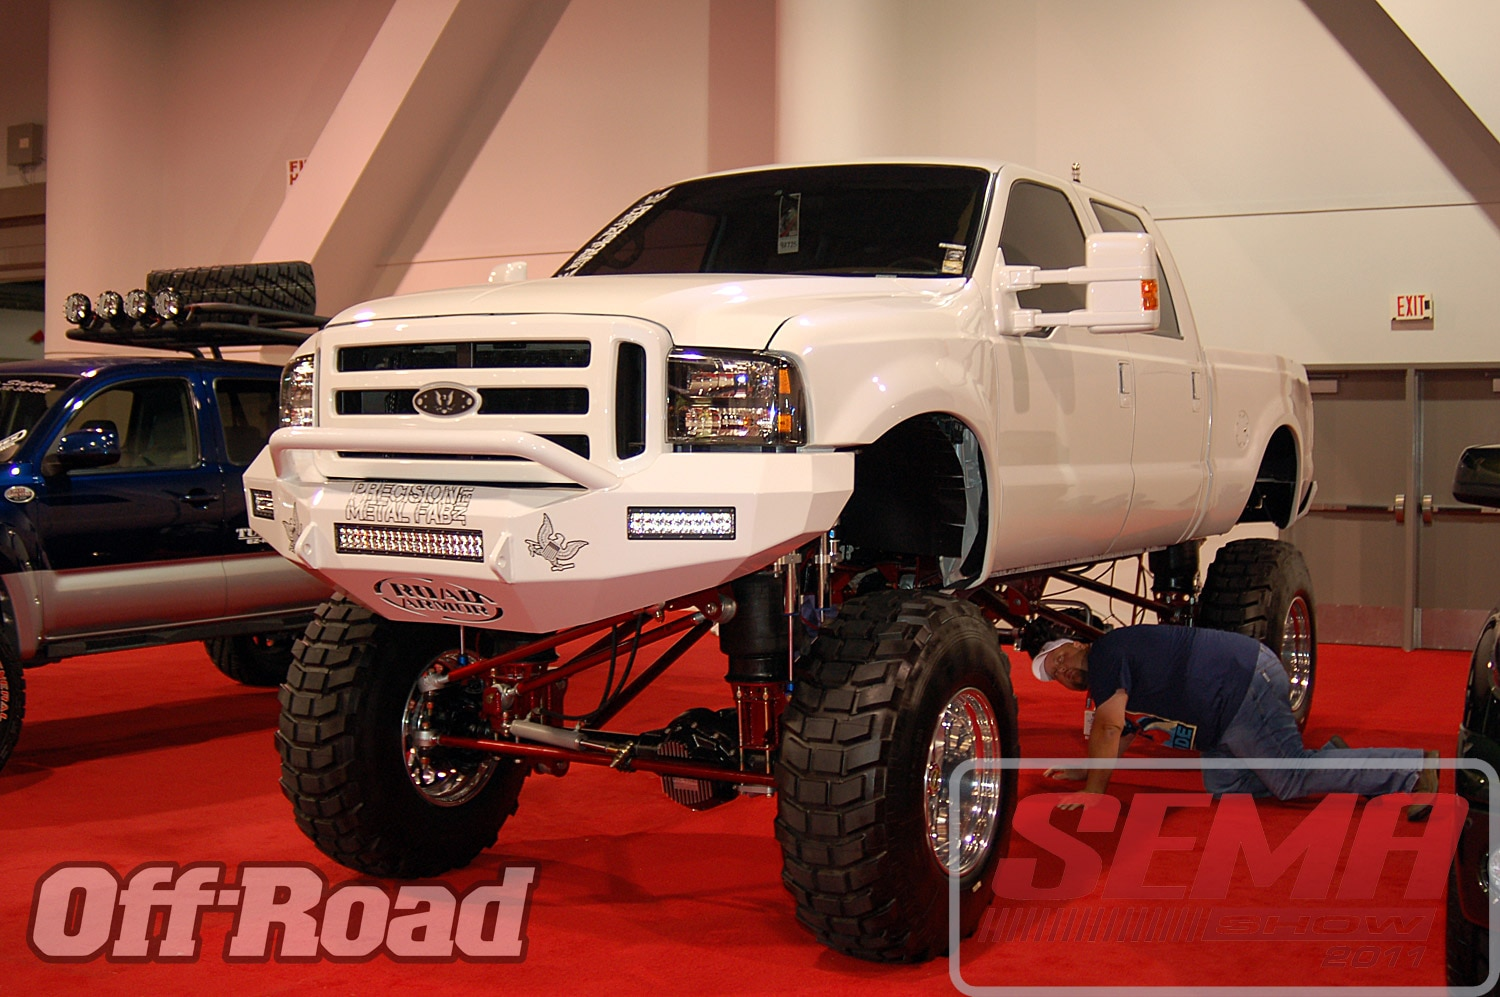 102312or 0046+2011 sema show+off road trucks and products